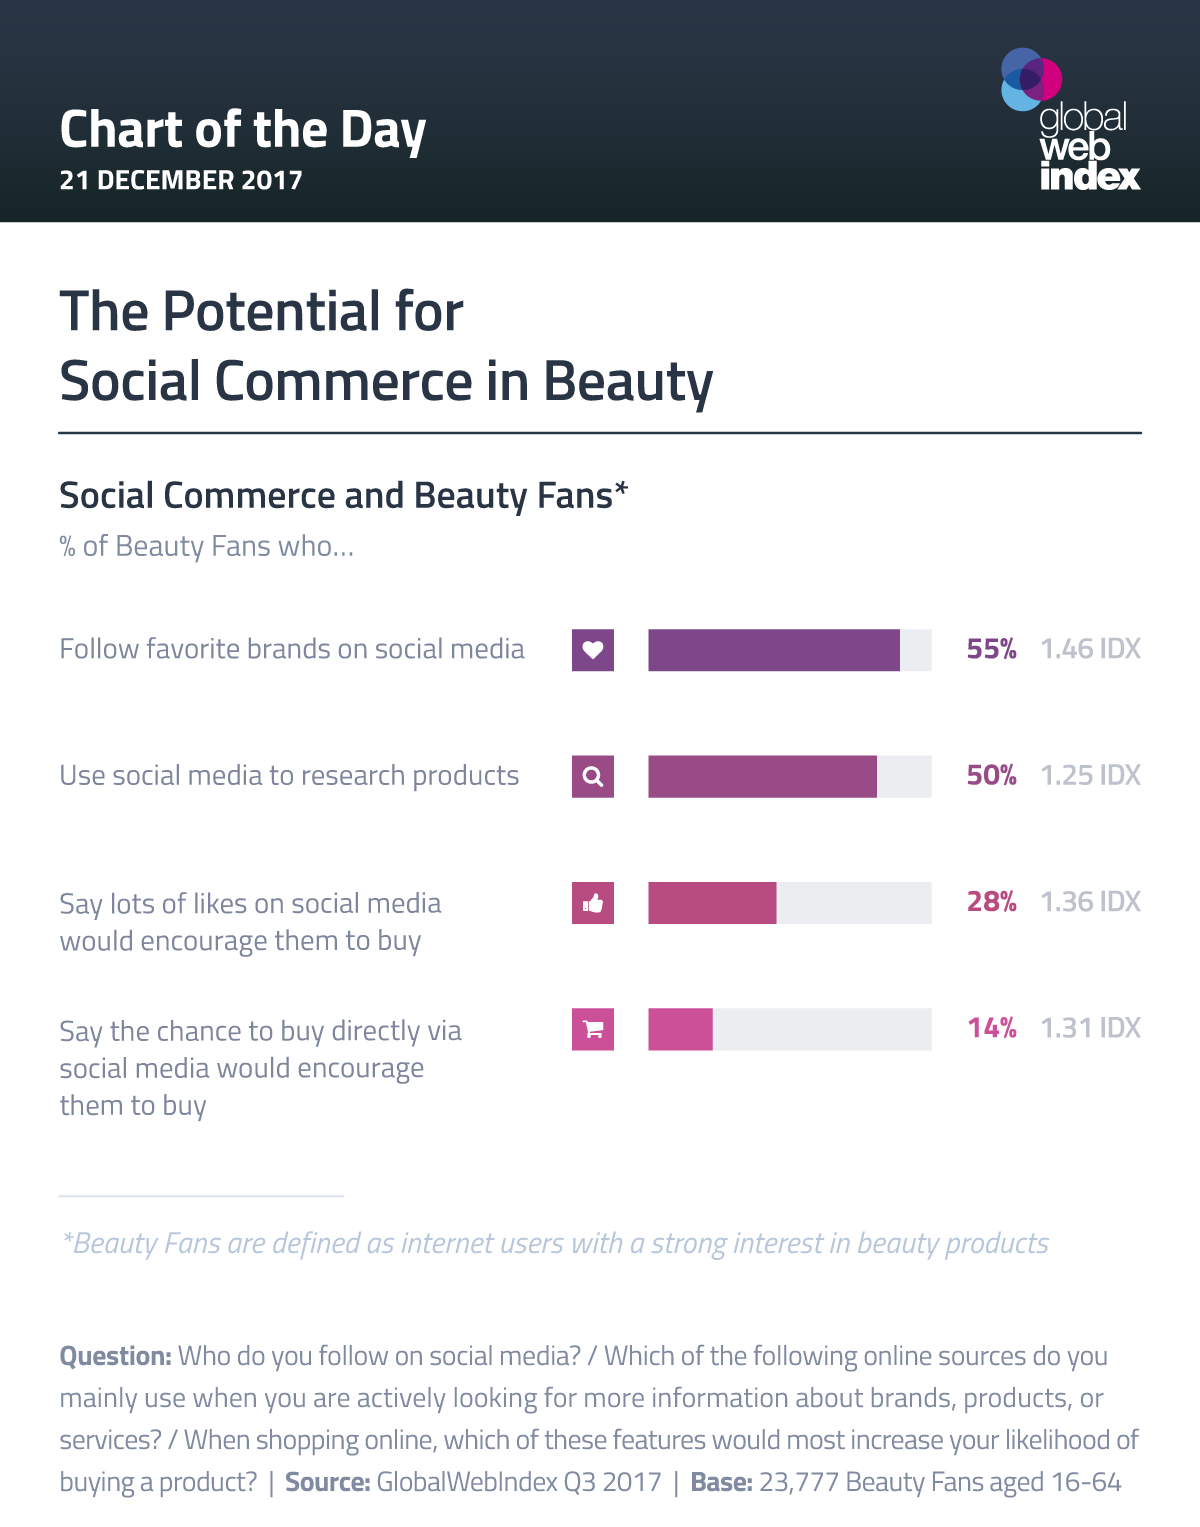 The Potential for Social Commerce in Beauty